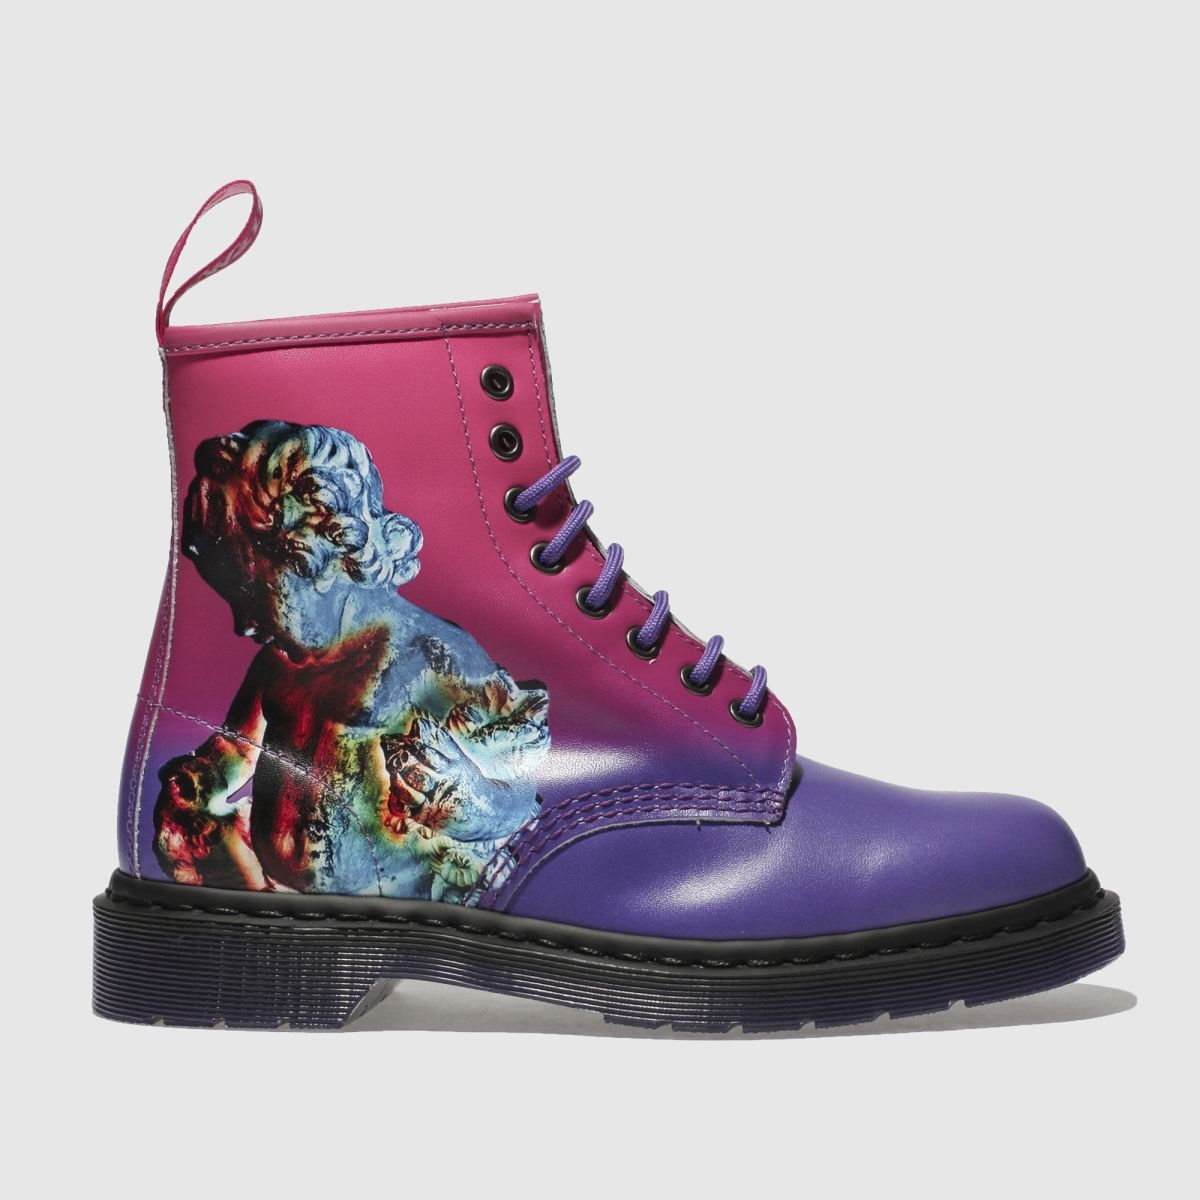 Dr Martens Purple 1460 Technique 8 Eye Boot Boots